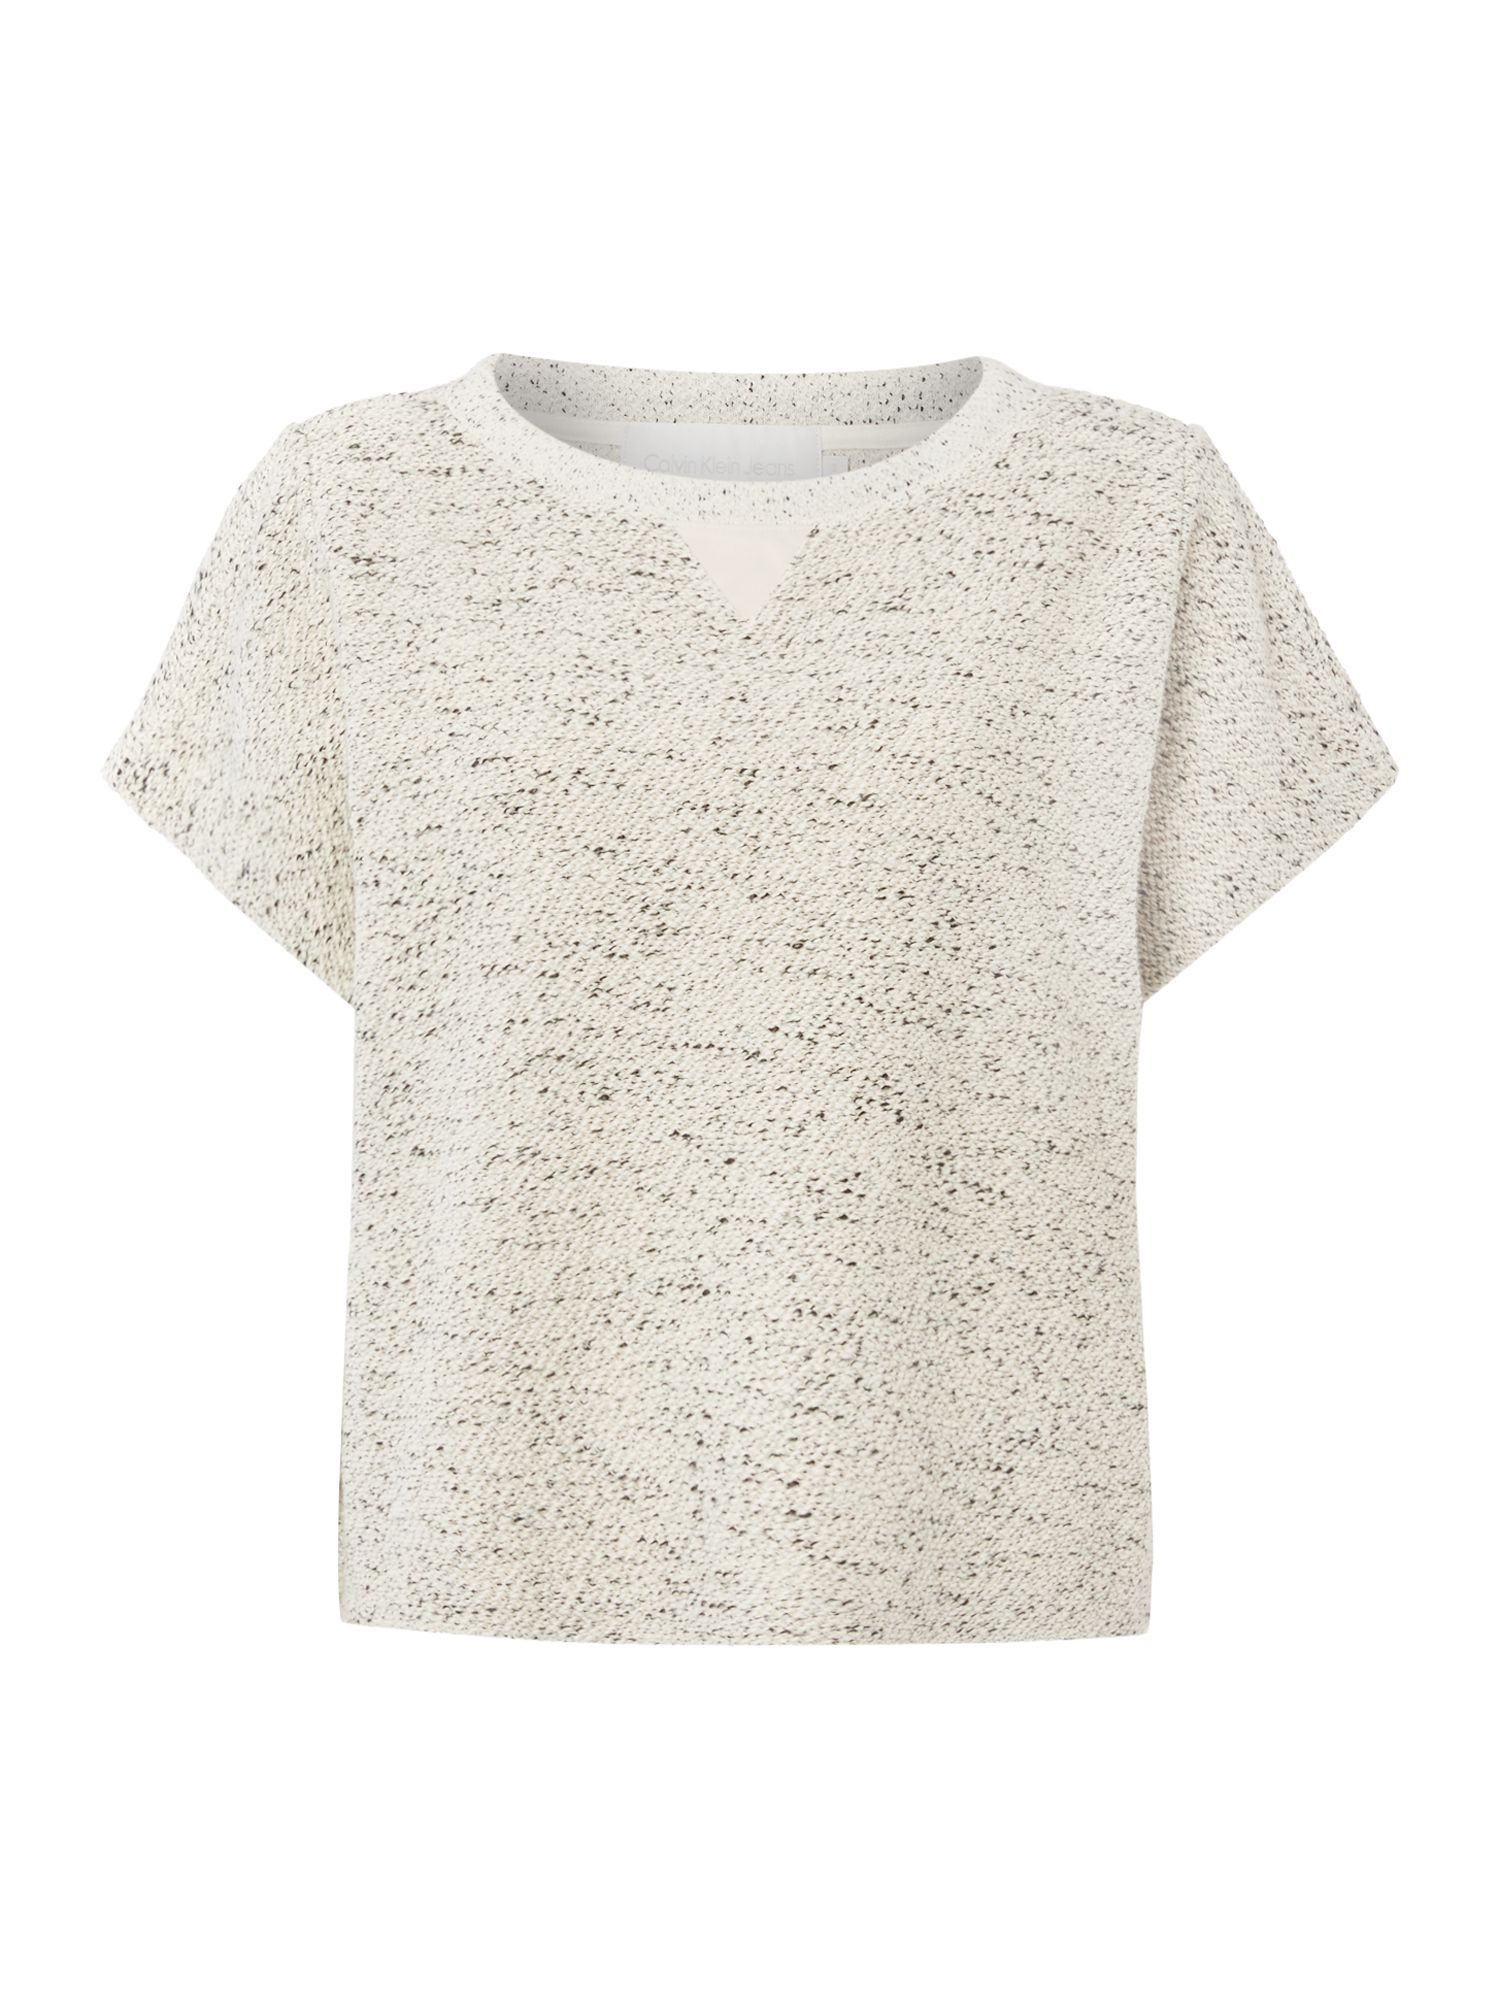 Helena short sleeve textured top